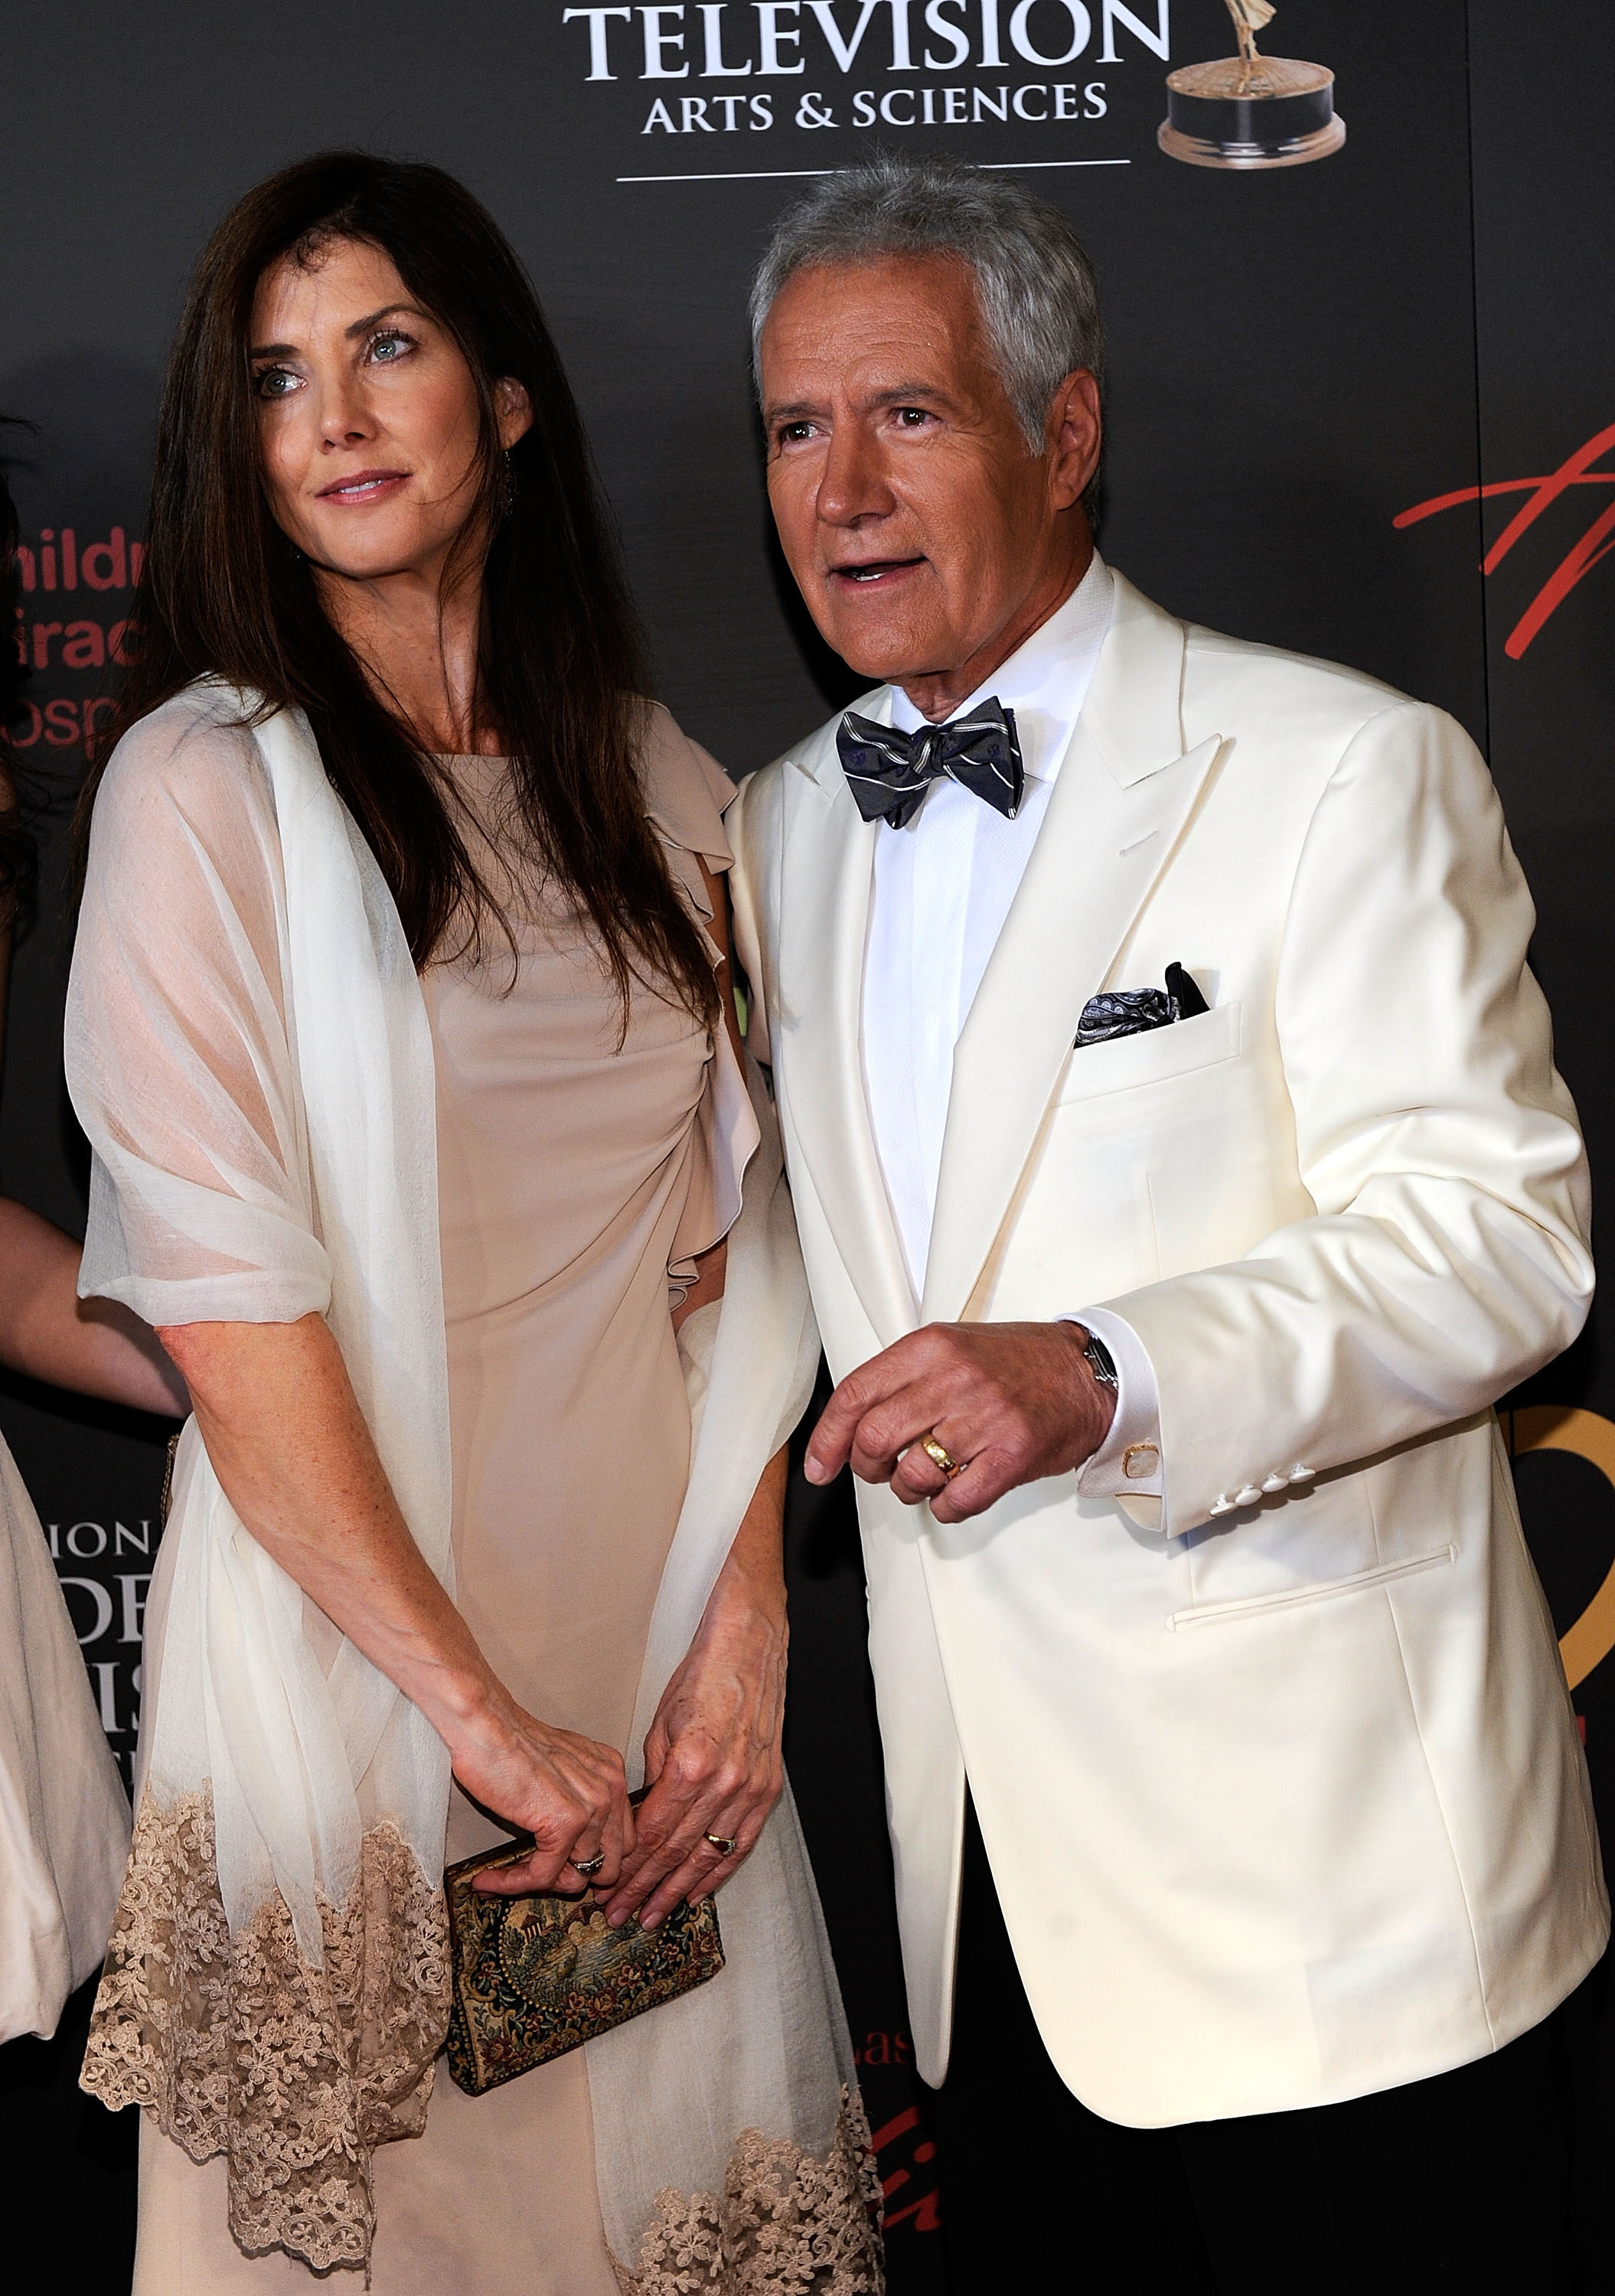 Alex Trebek (R) and Jean Currivan Trebek arrive at the 38th Annual Daytime Entertainment Emmy Awards held at the Las Vegas Hilton on June 19, 2011 in Las Vegas, Nevada.